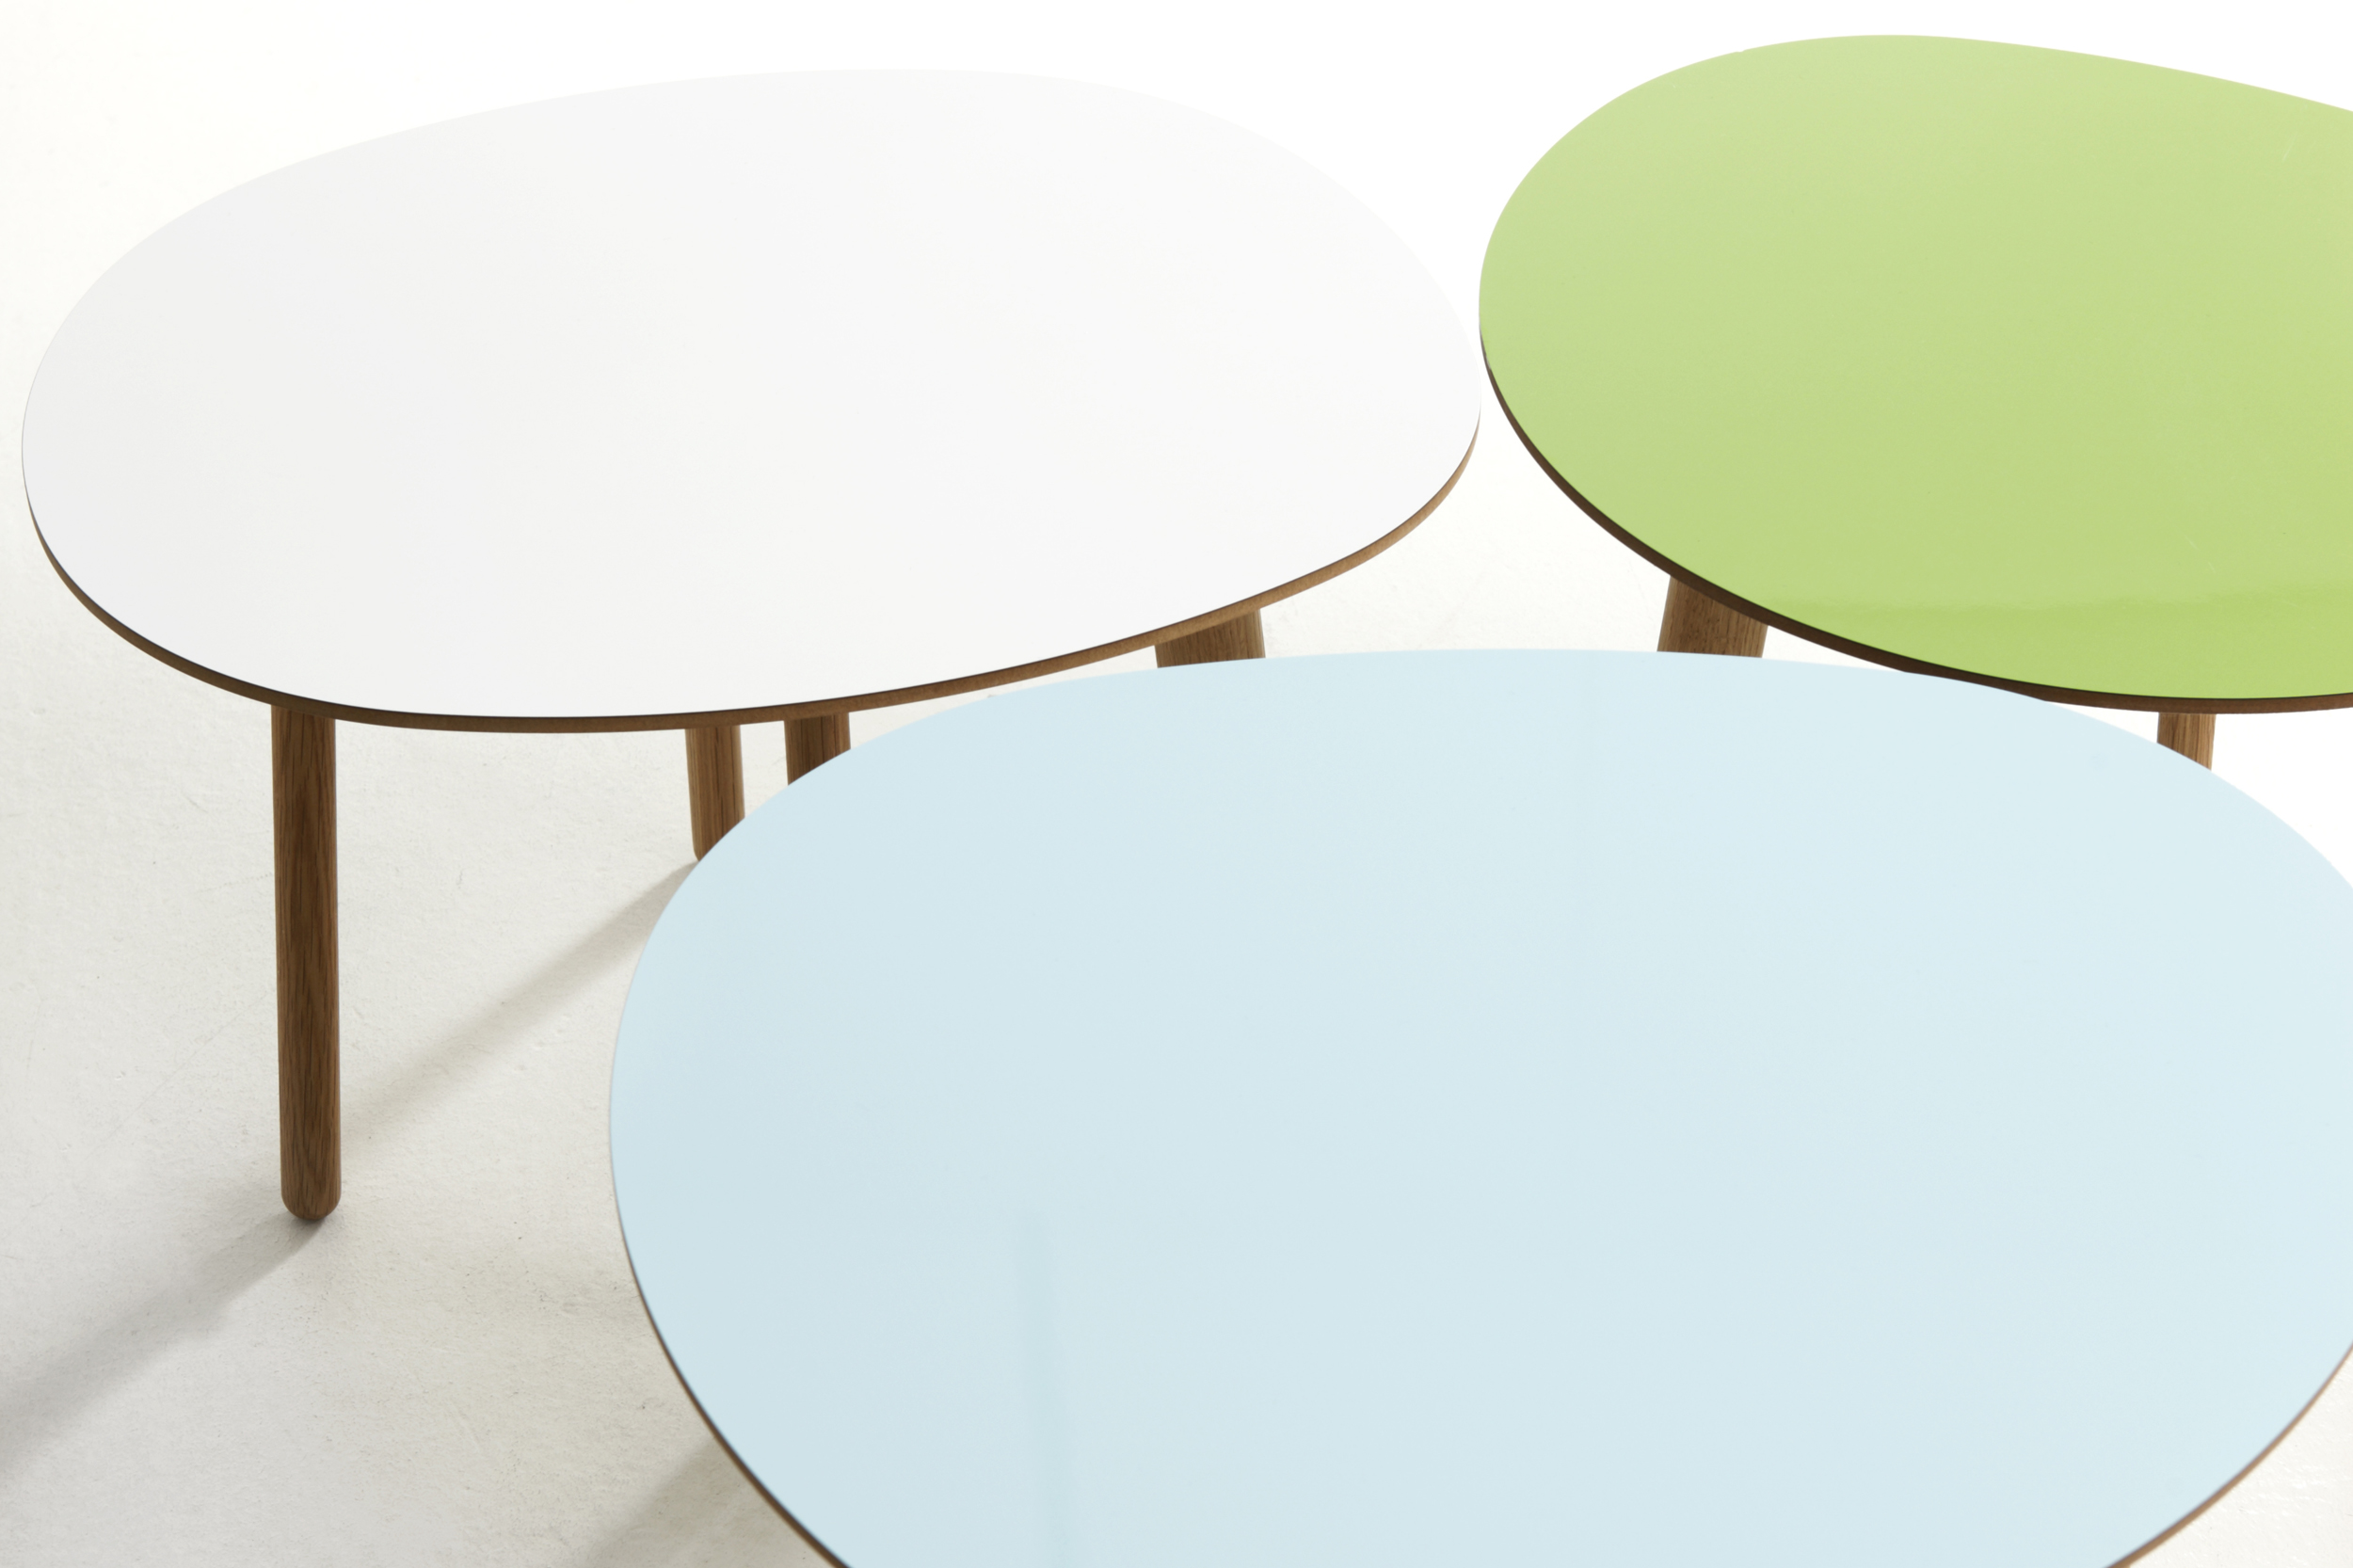 Morris coffee table model 2 in white, model 5 in apple green and model 1 in lagoon blue